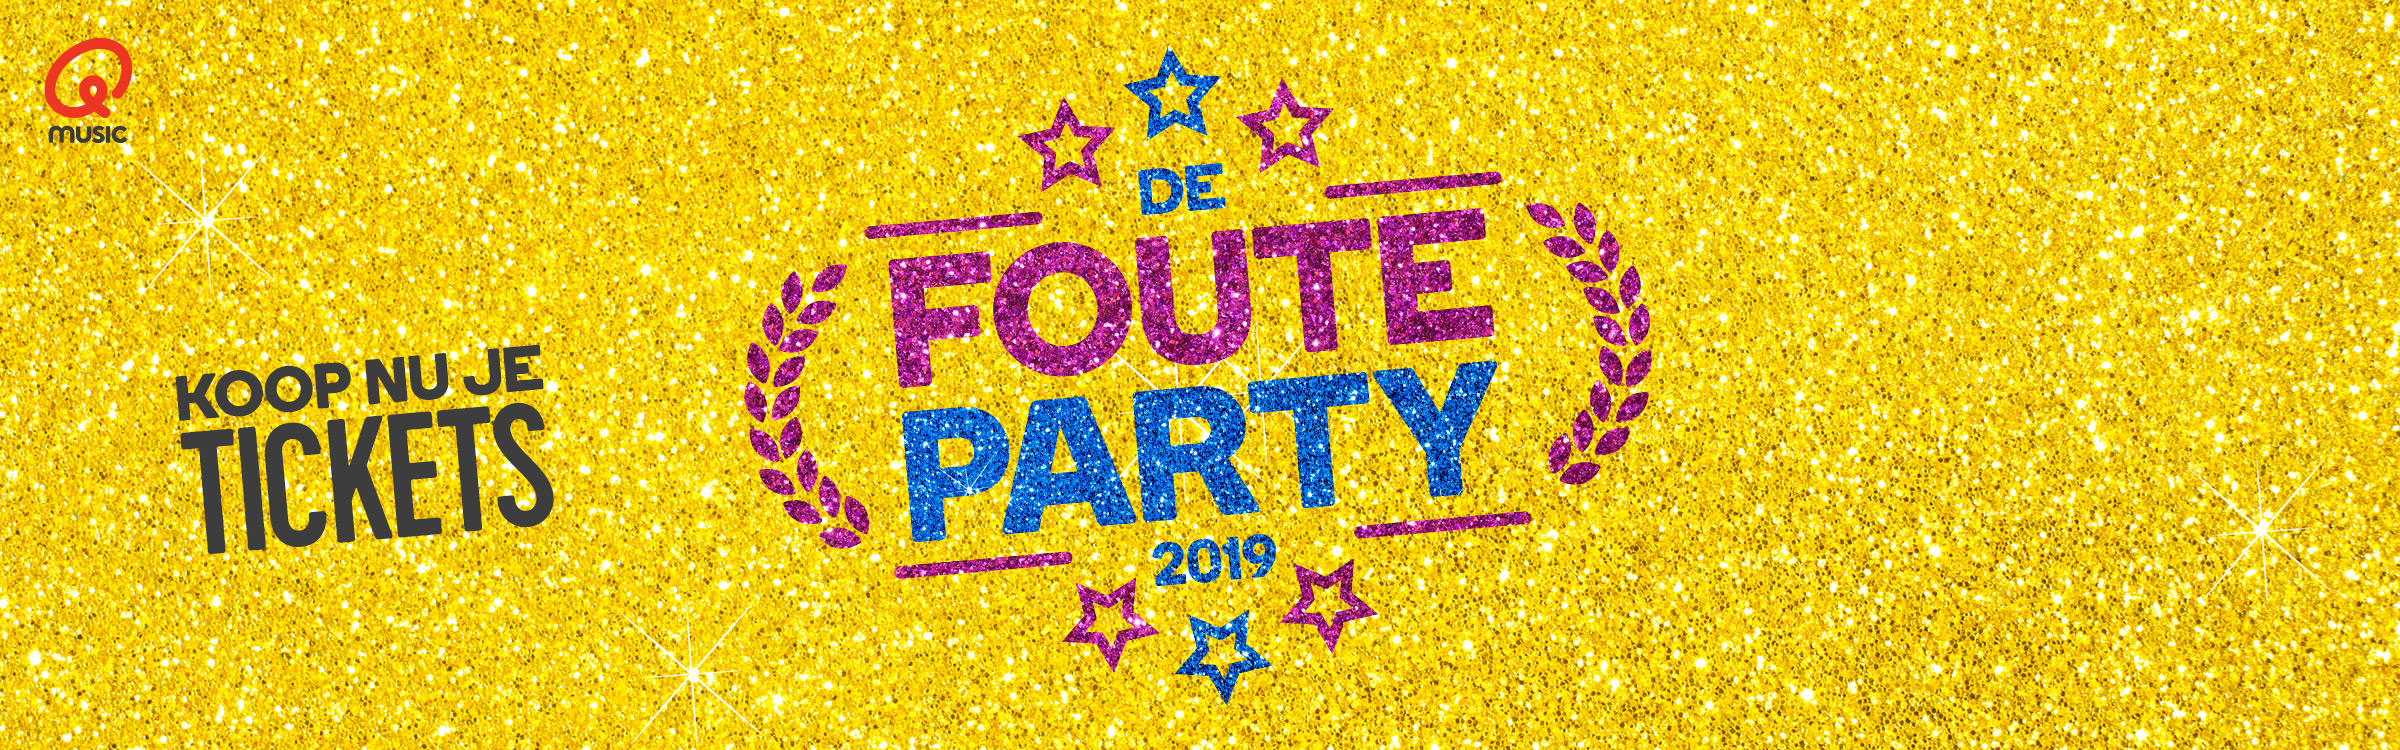 Qmusic actionheader fouteparty2019